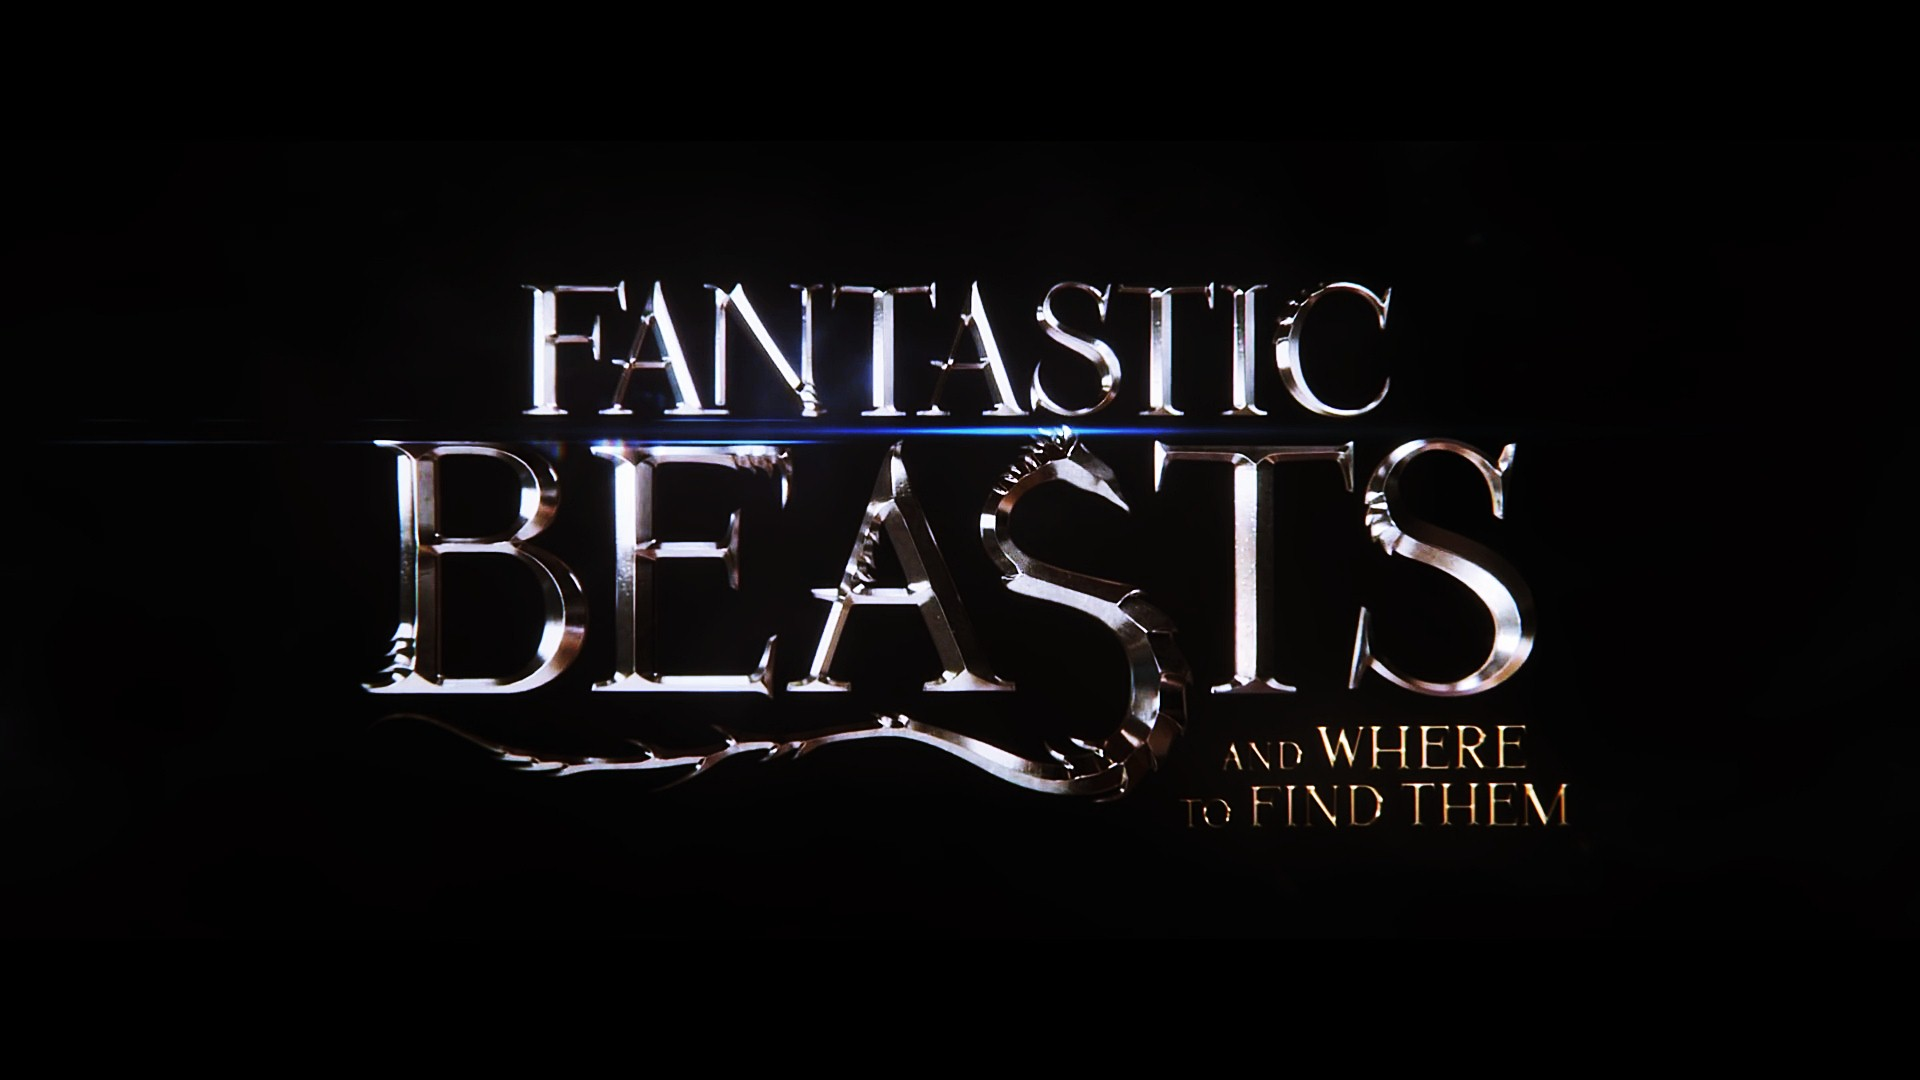 Fantastic Beasts And Where To Find Them Logo Wallpaper 00096